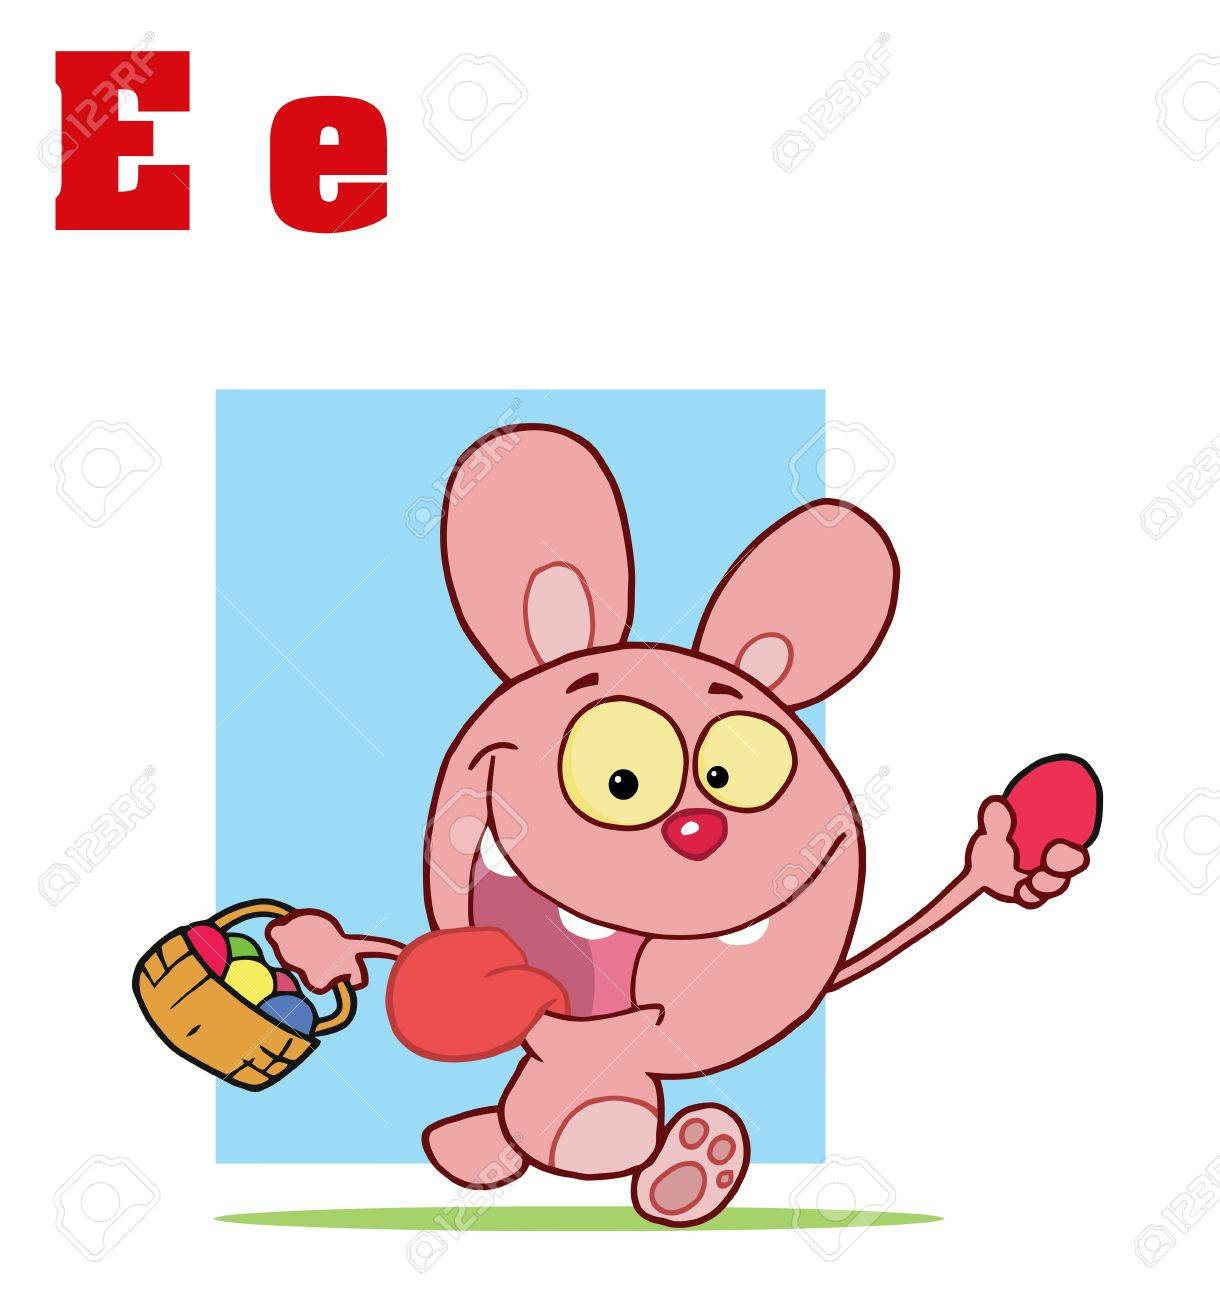 Funny cartoons alphabet easter bunny with letters e royalty free funny cartoons alphabet easter bunny with letters e stock vector 6905767 altavistaventures Gallery